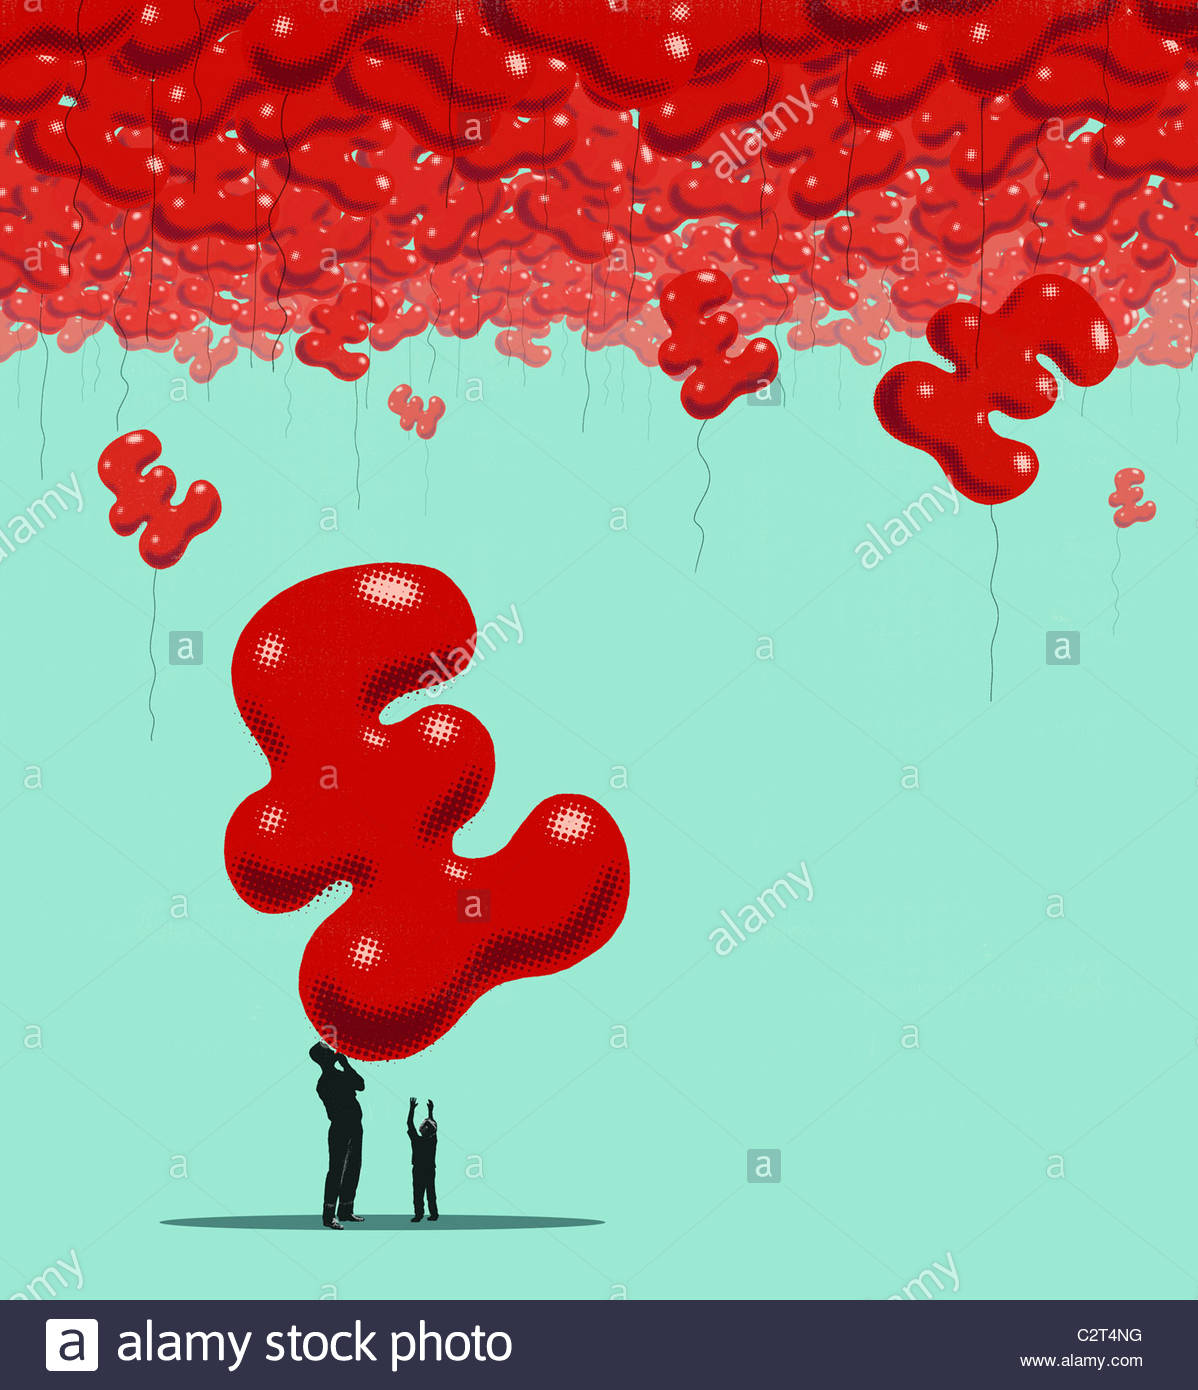 Father blowing up British pound balloons - Stock Image